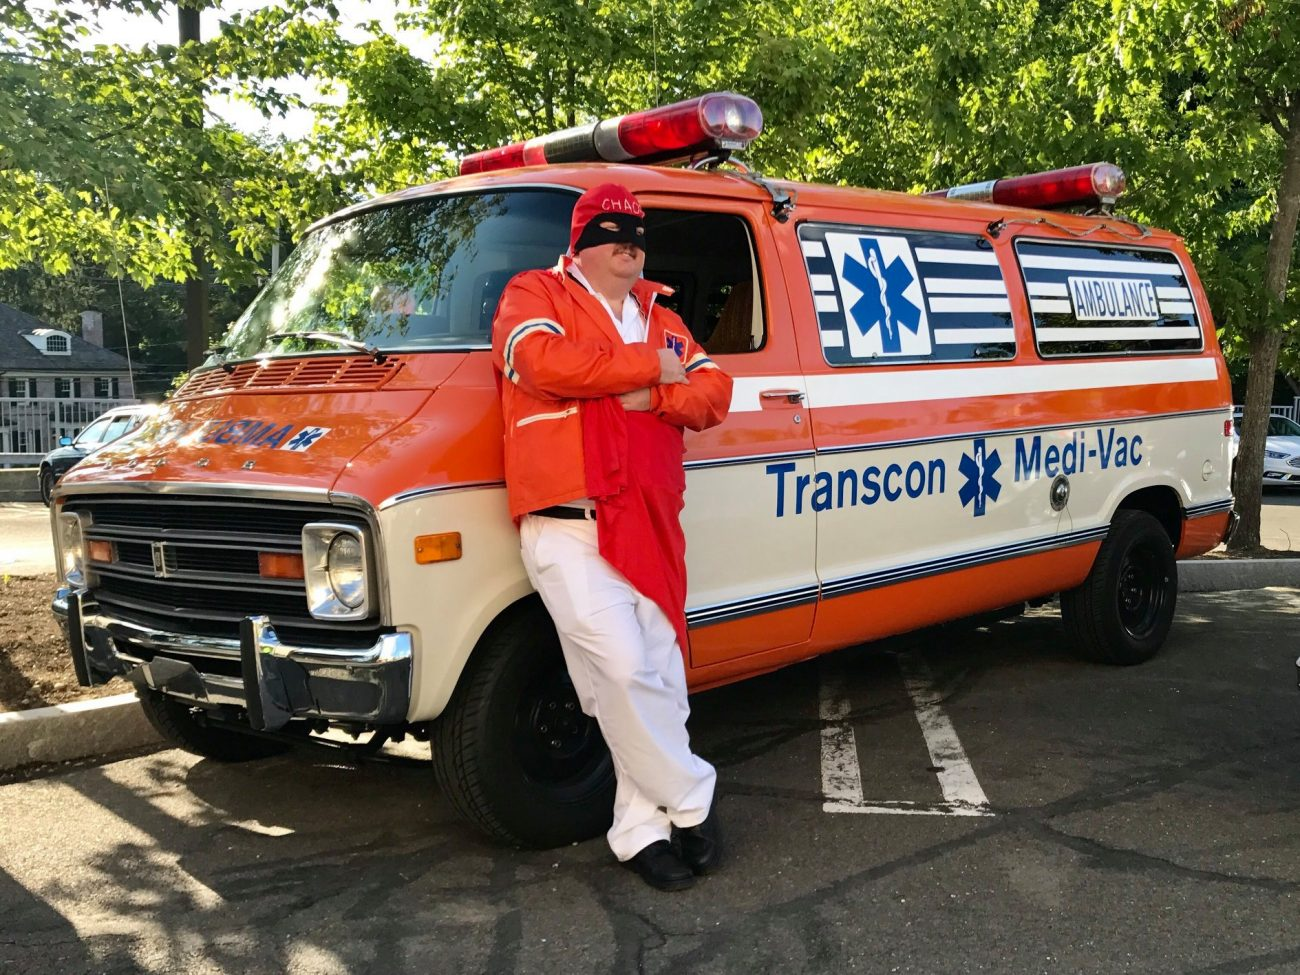 Can You Race An Ambulance Across The USA?